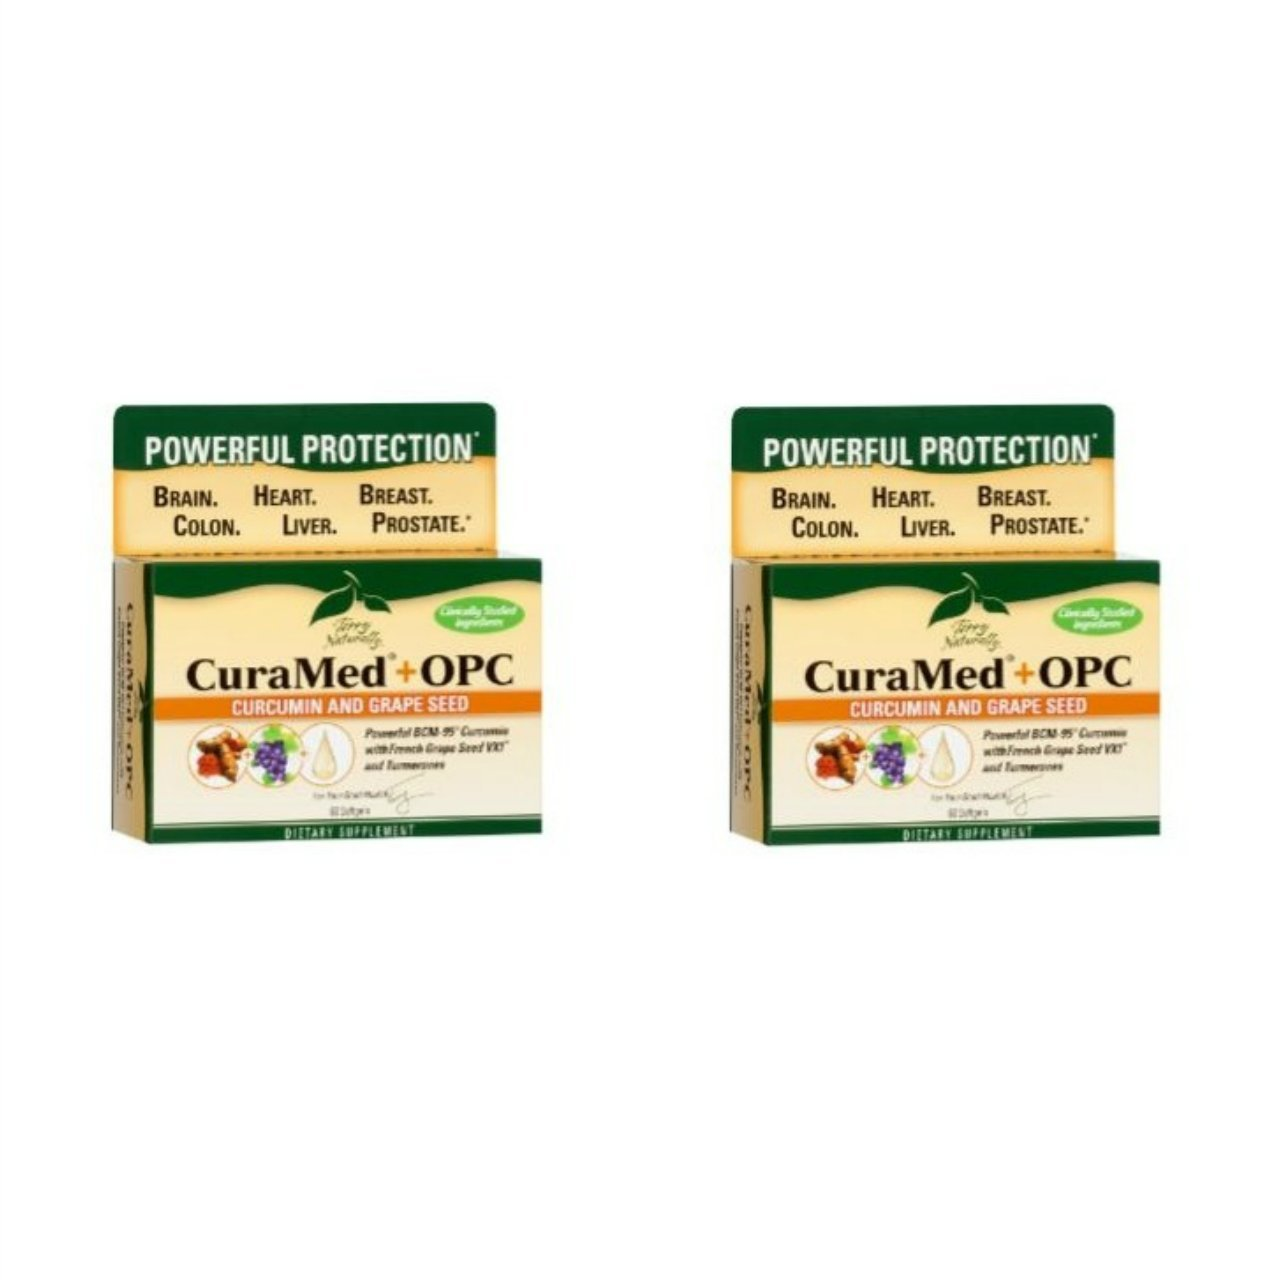 Terry Naturally/Europharma Curamed + OPC( PreviouslyBCM95 + OPC )-60 Softgels -2 Pack